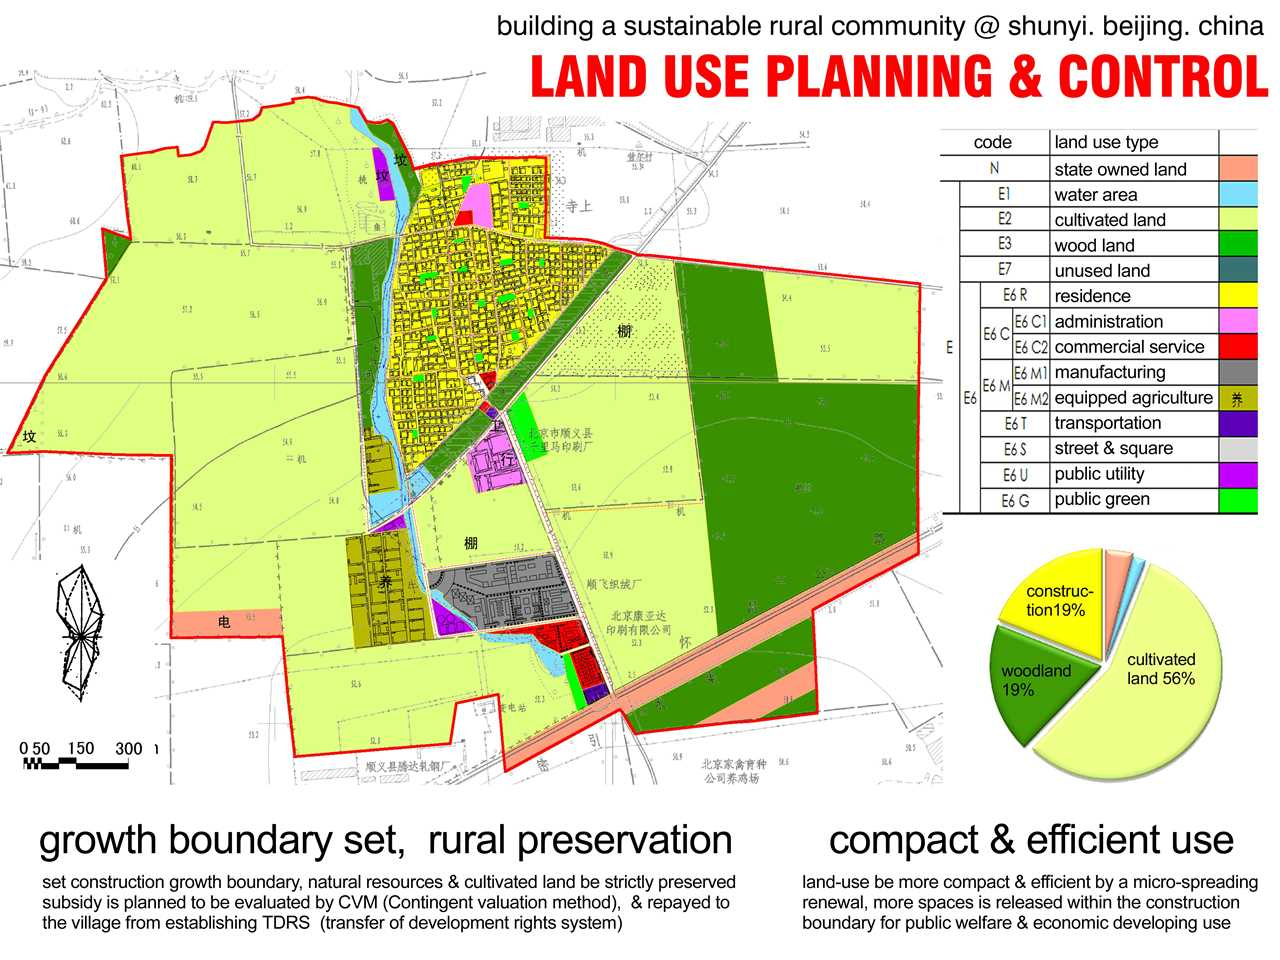 Sustainable Planning For A Rural Community Beijing China